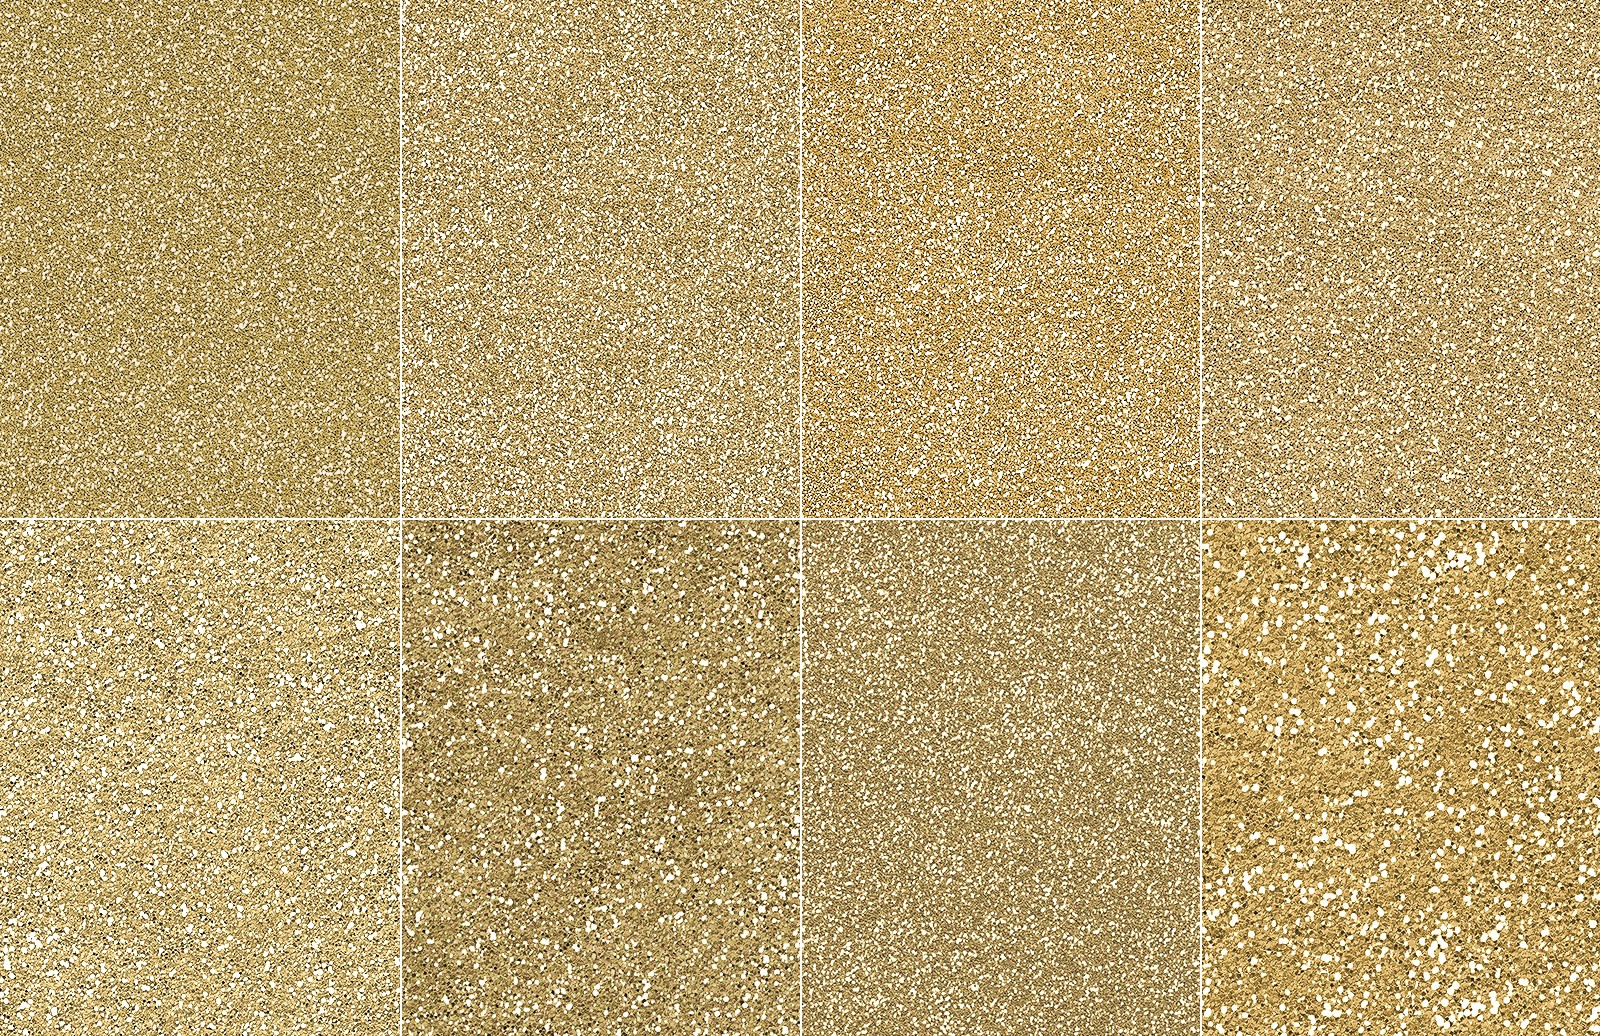 Seamless  Glitter  Textures  Preview 2